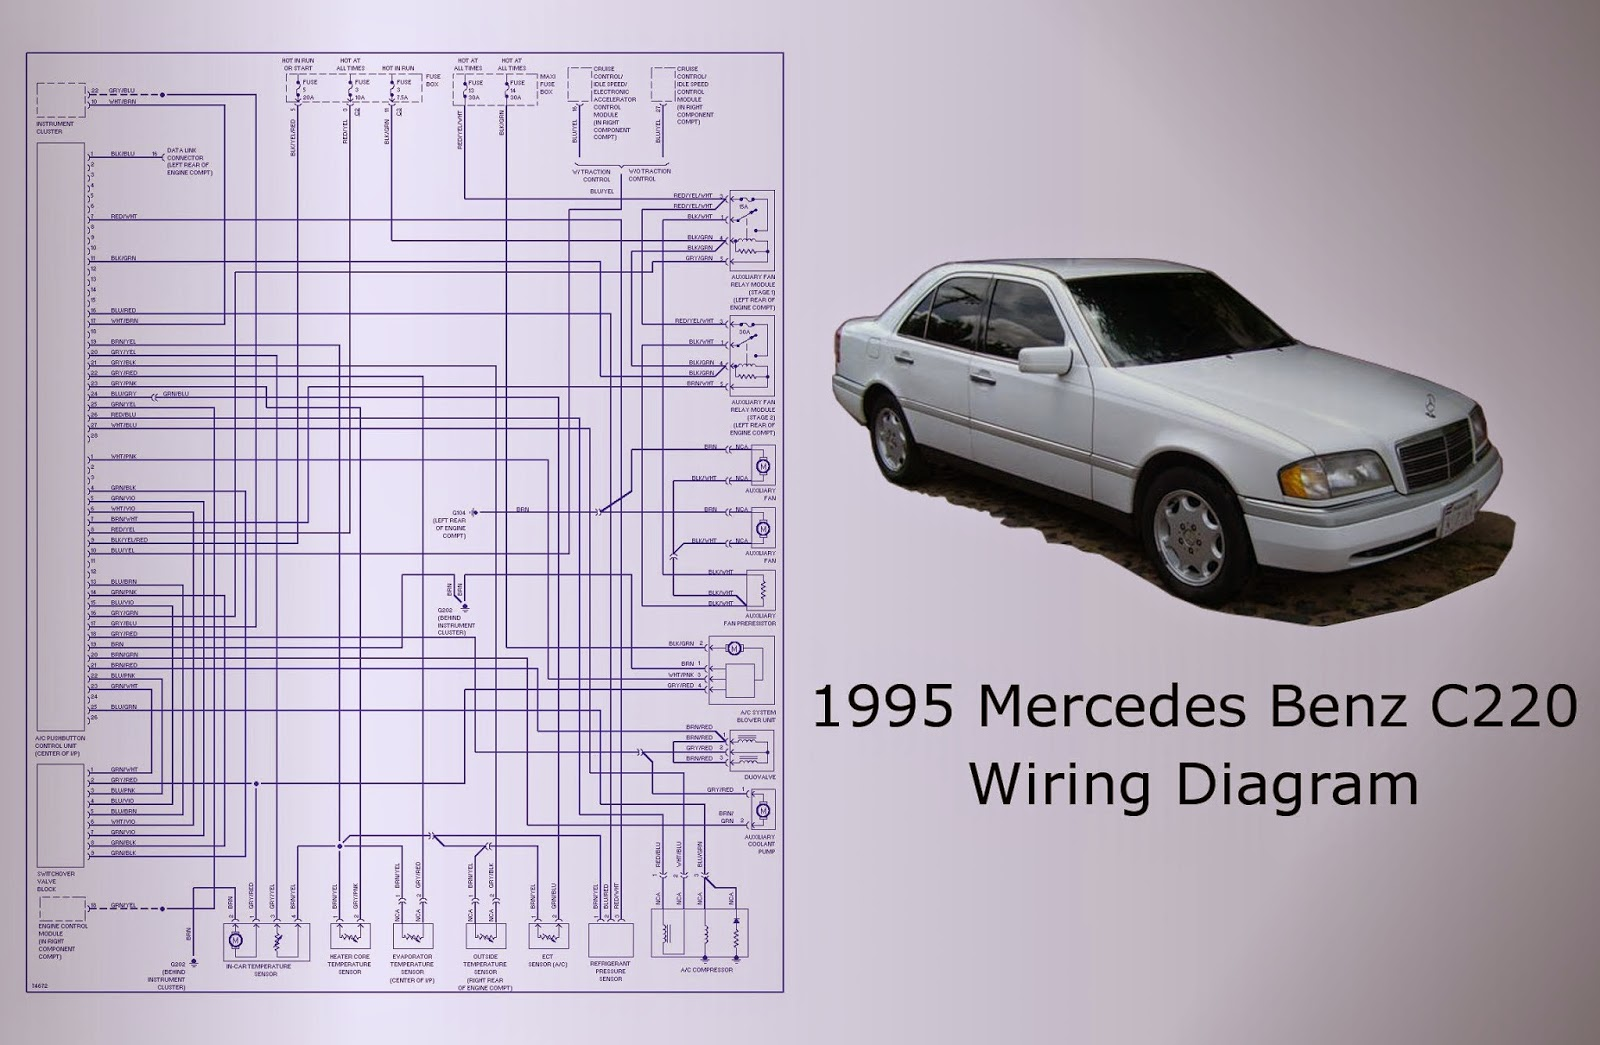 mercedes benz c320 wiring diagram 1995 mercedes benz c220 wiring diagram | auto wiring diagrams mercedes benz c220 wiring